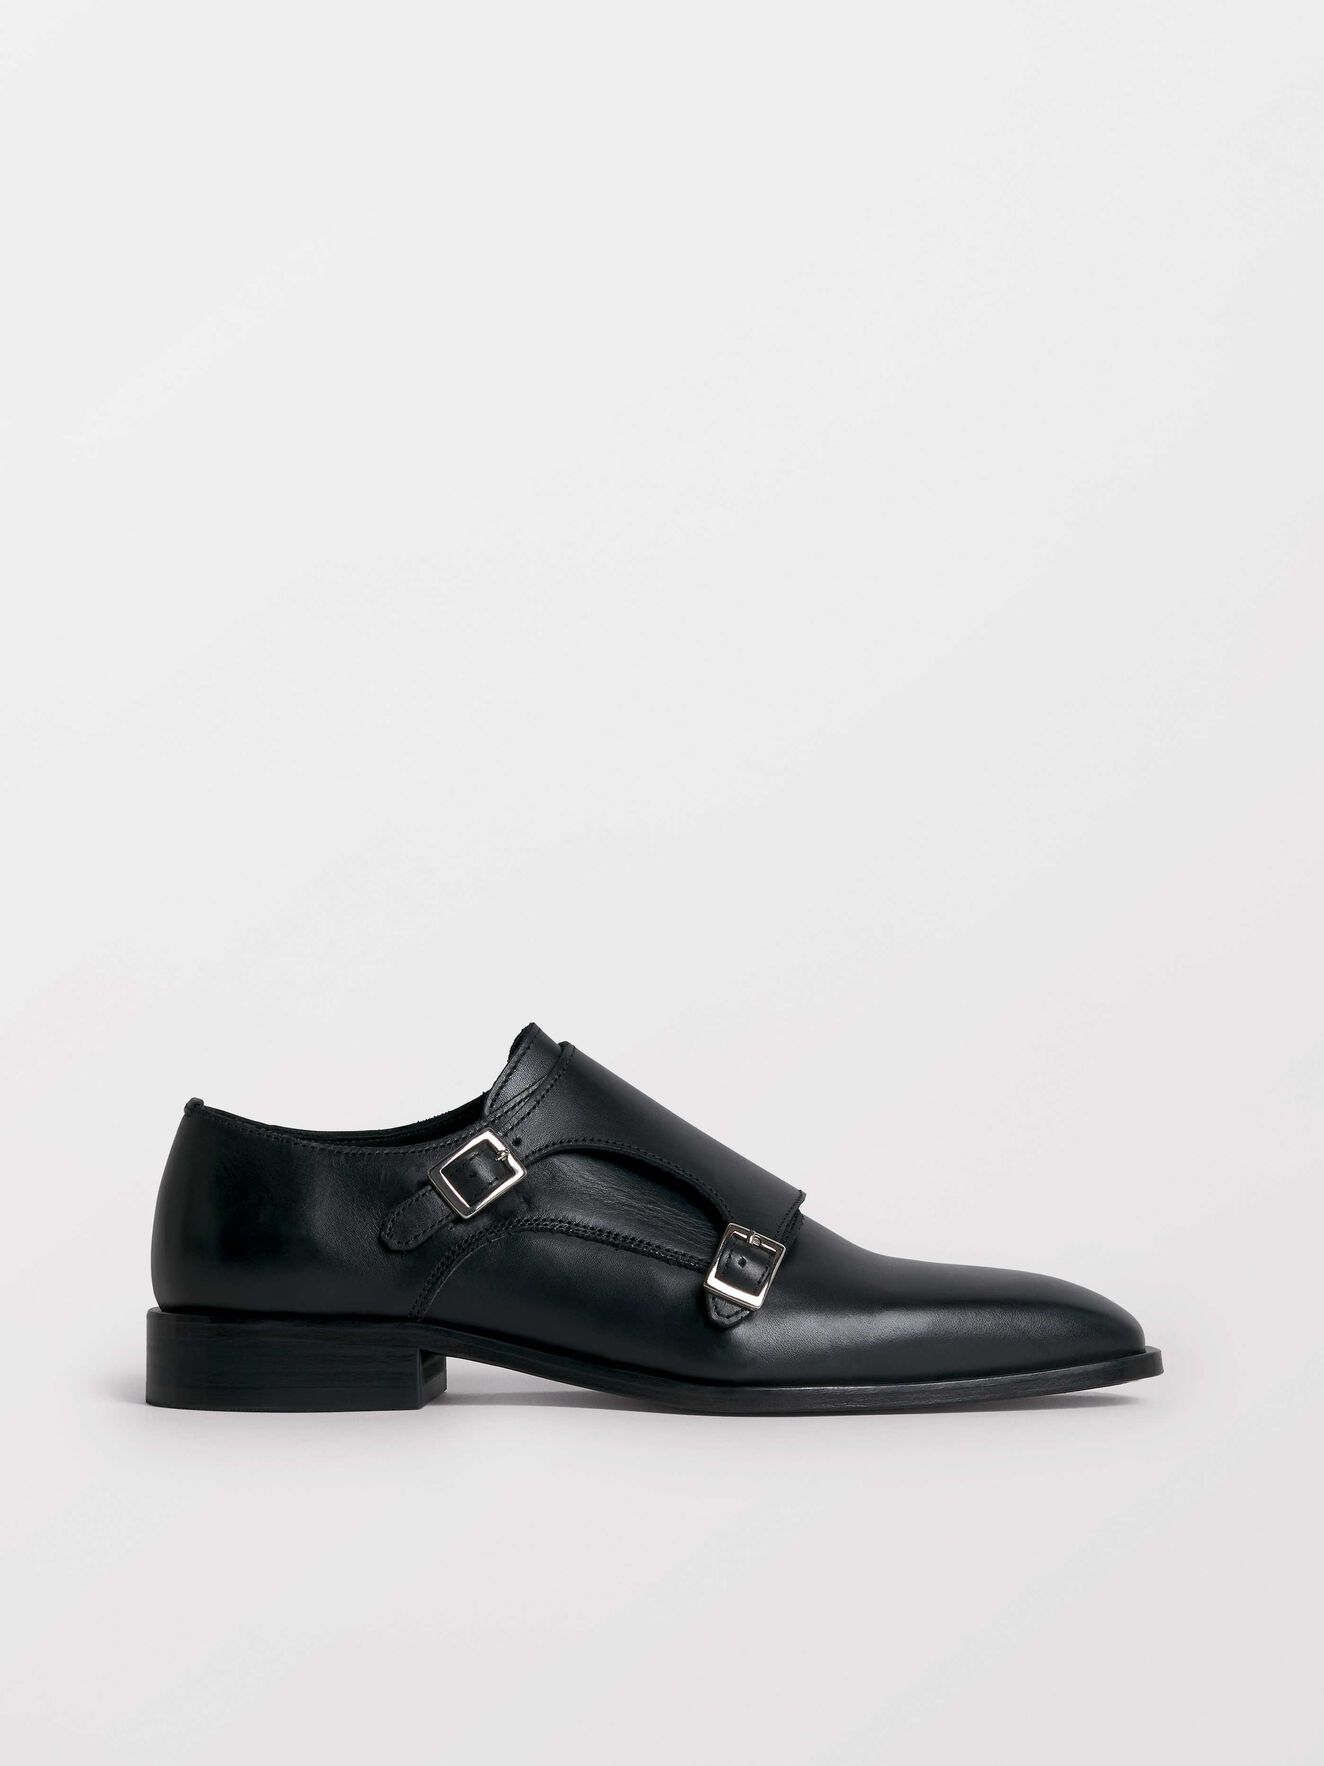 Monaca Shoes in Black from Tiger of Sweden